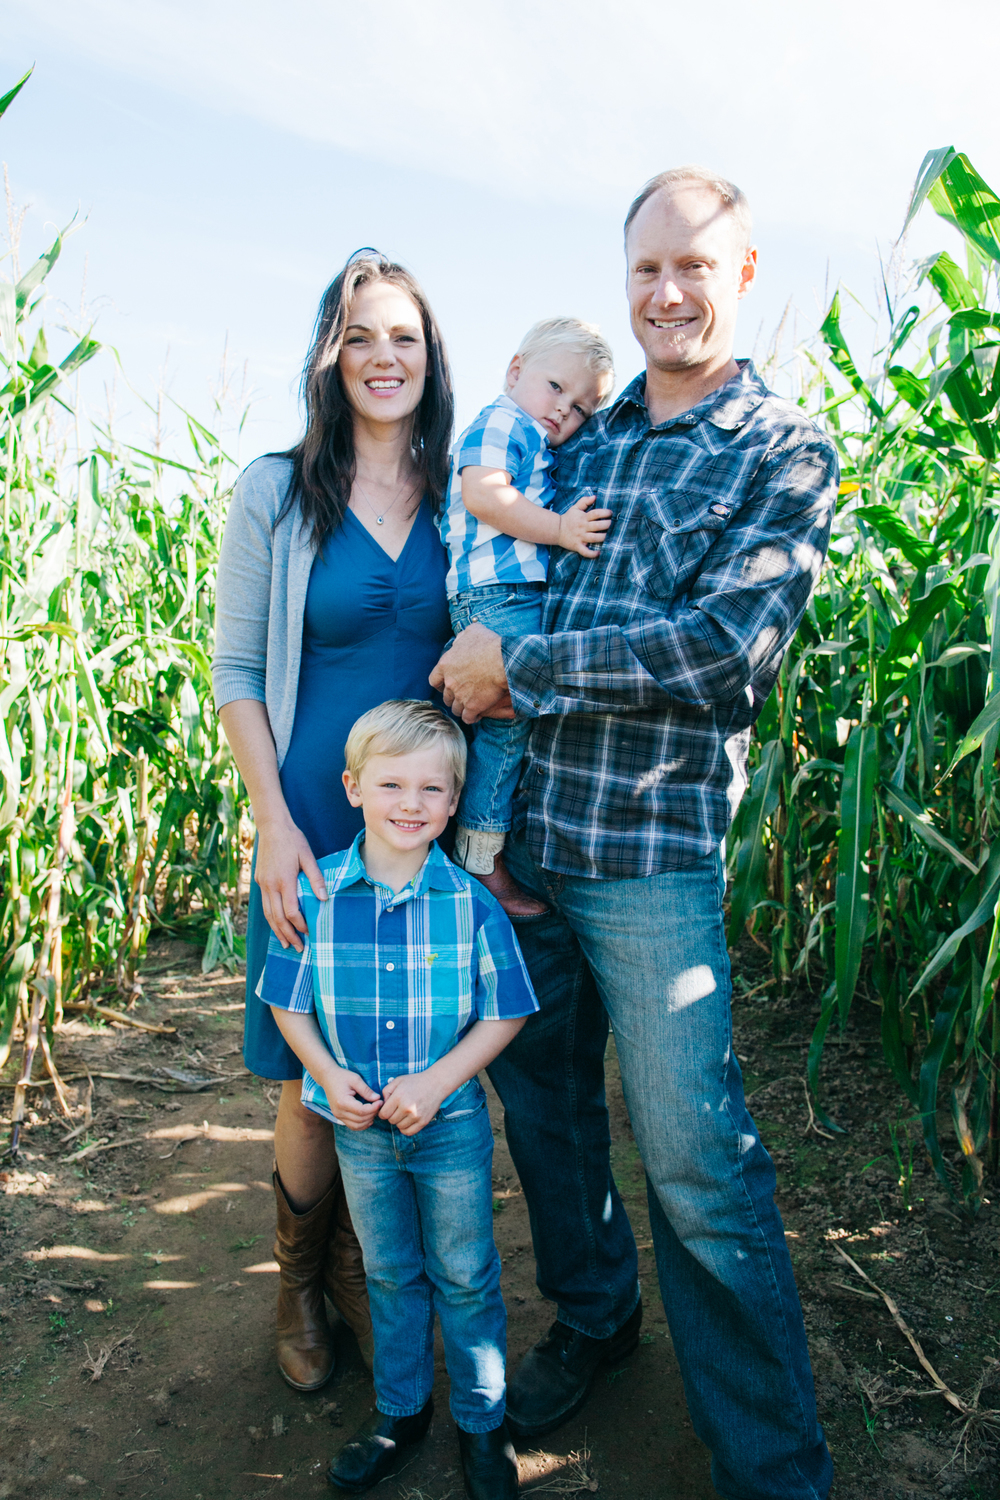 042-bellingham-family-photographer-bellewood-acres-katheryn-moran-photography.jpg